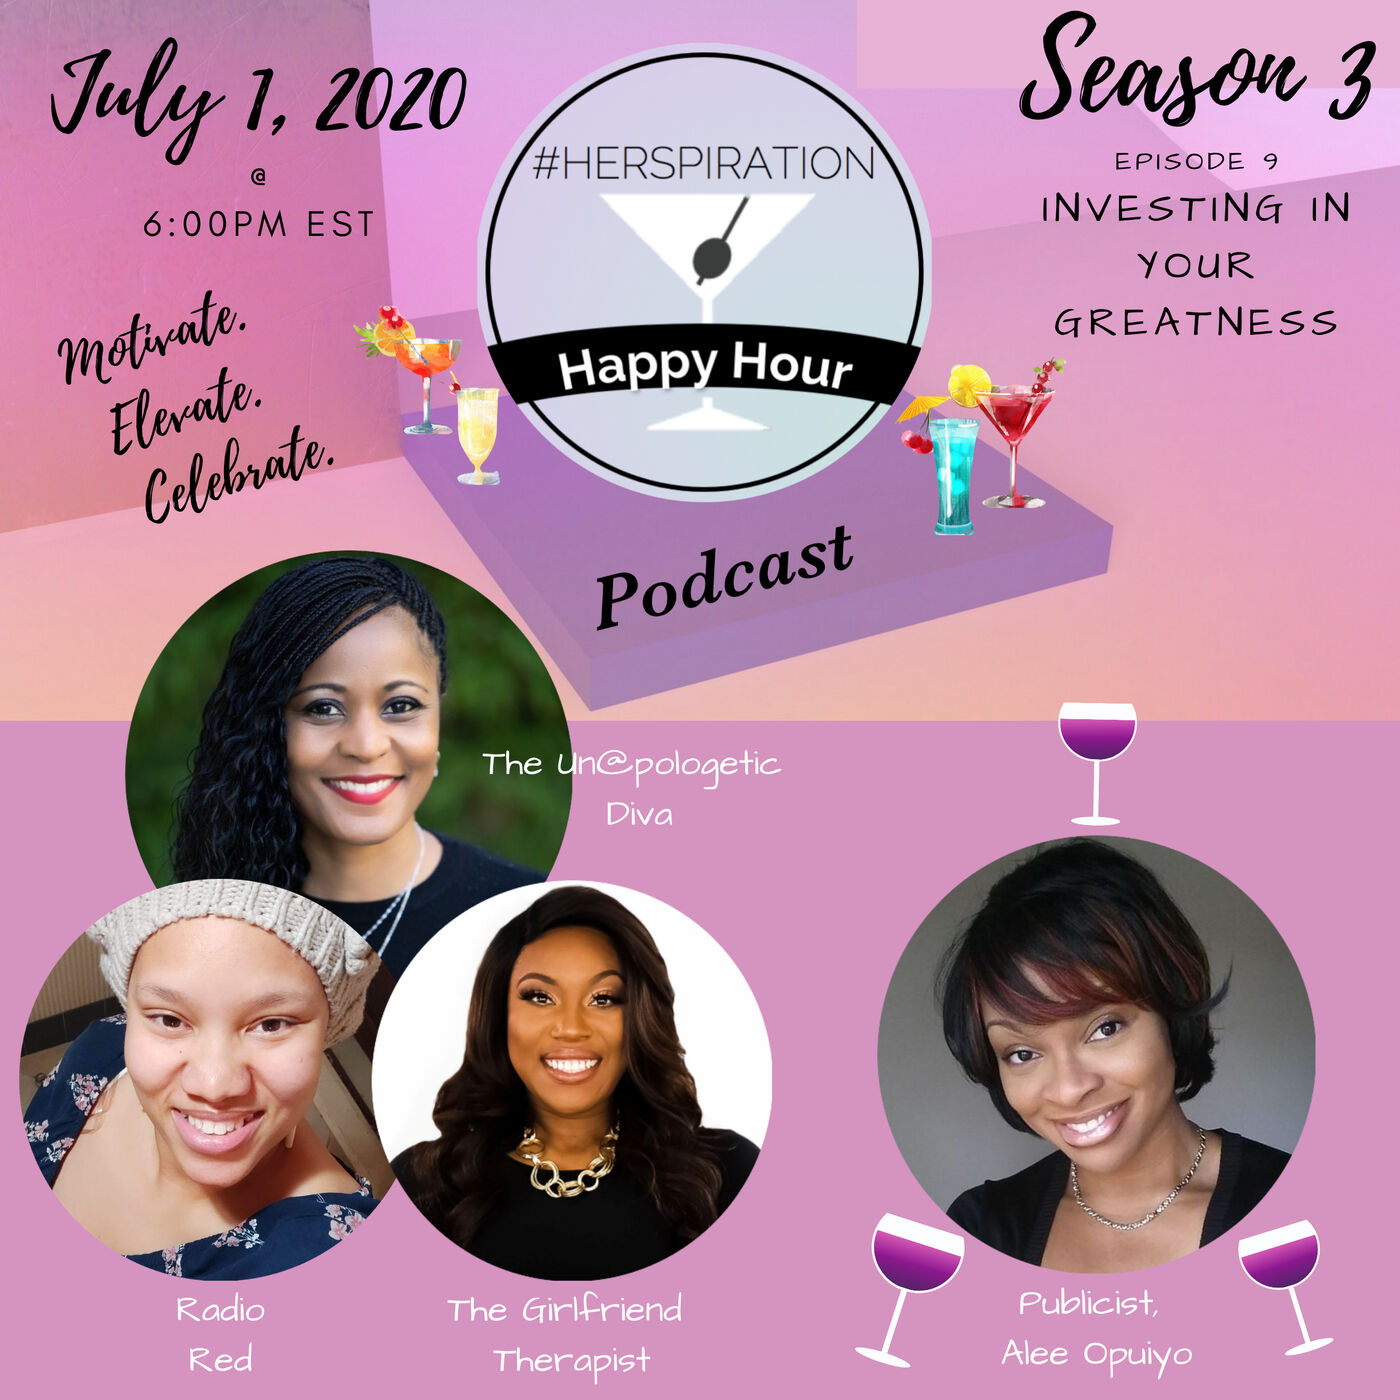 Herspiration Happy Hour Season 3, Episode 9, Investing in Your Own Greatness w/ Publicist, Alee Opuiyo